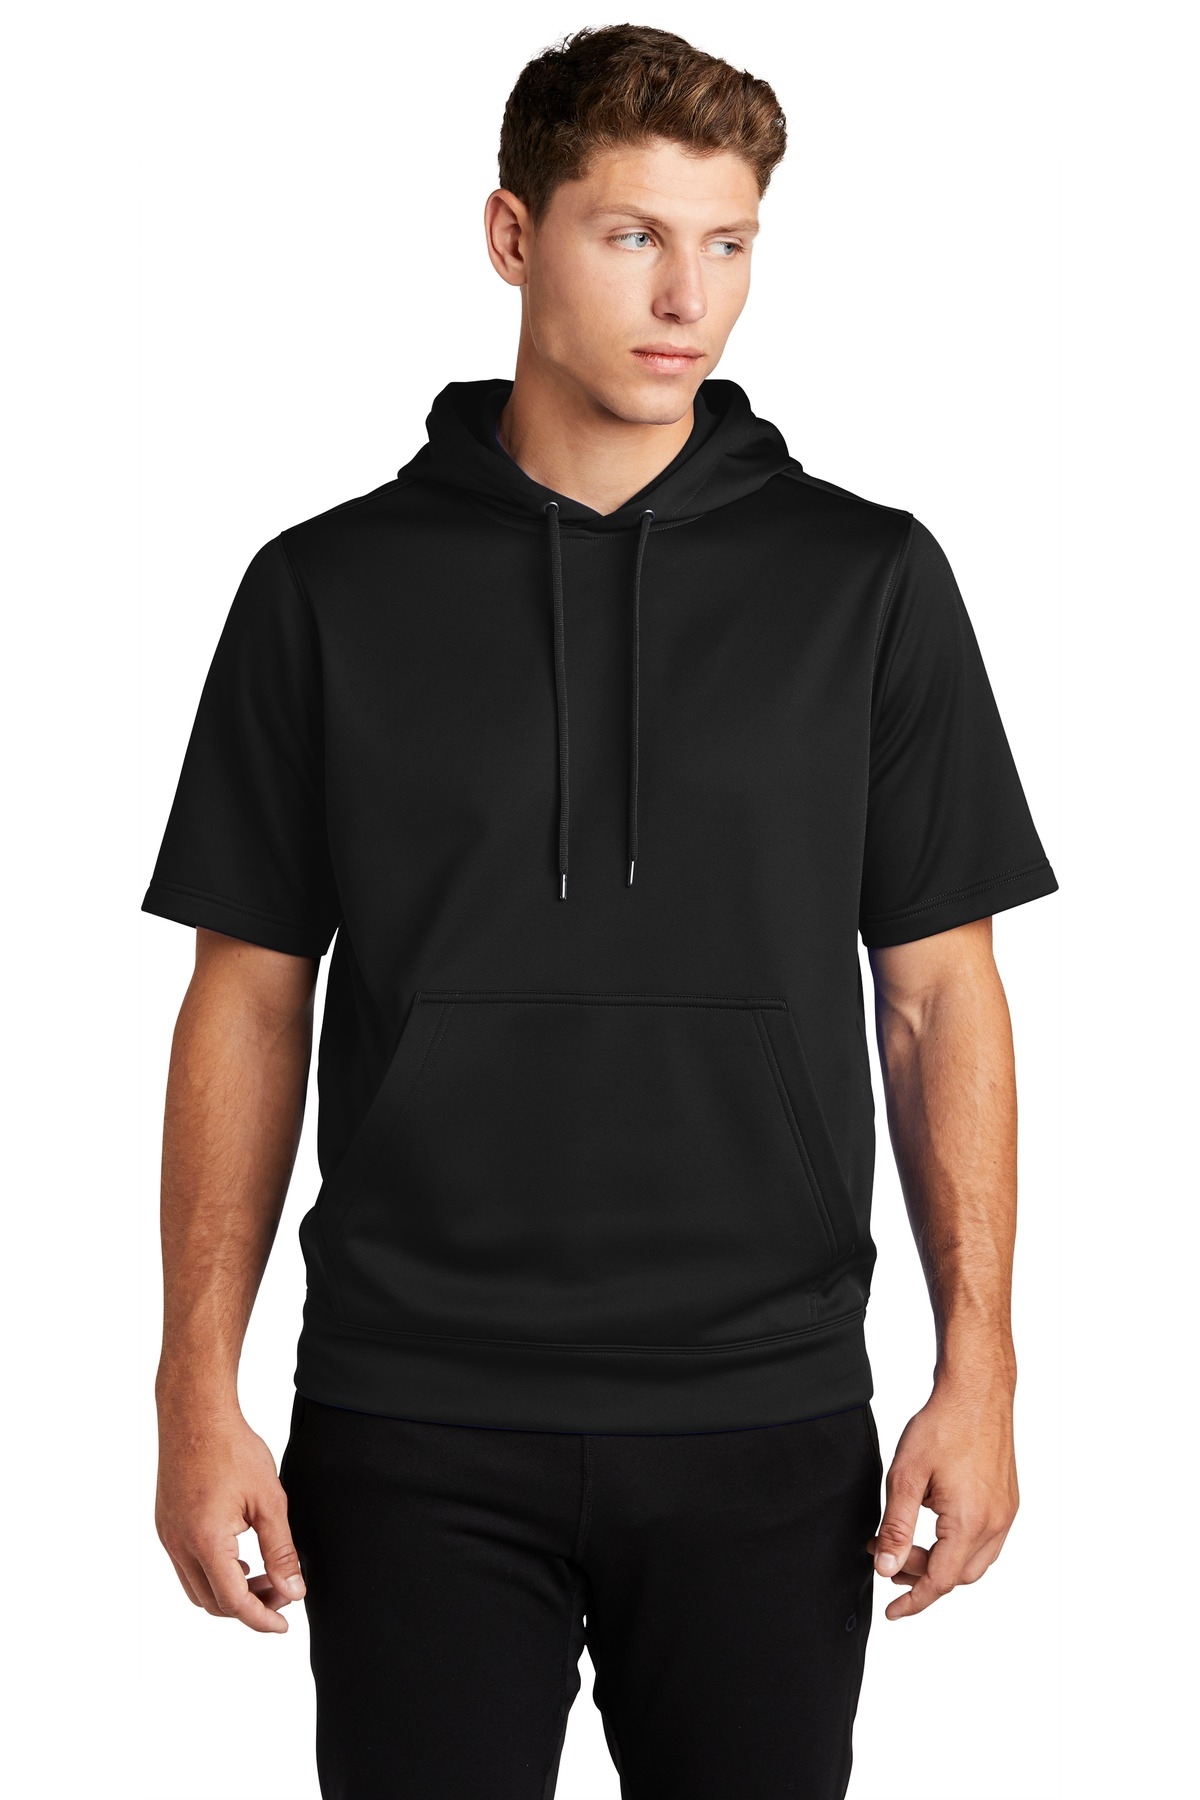 Sport-Tek  ®  Sport-Wick  ®  Fleece Short Sleeve Hooded Pullover. ST251 - Black